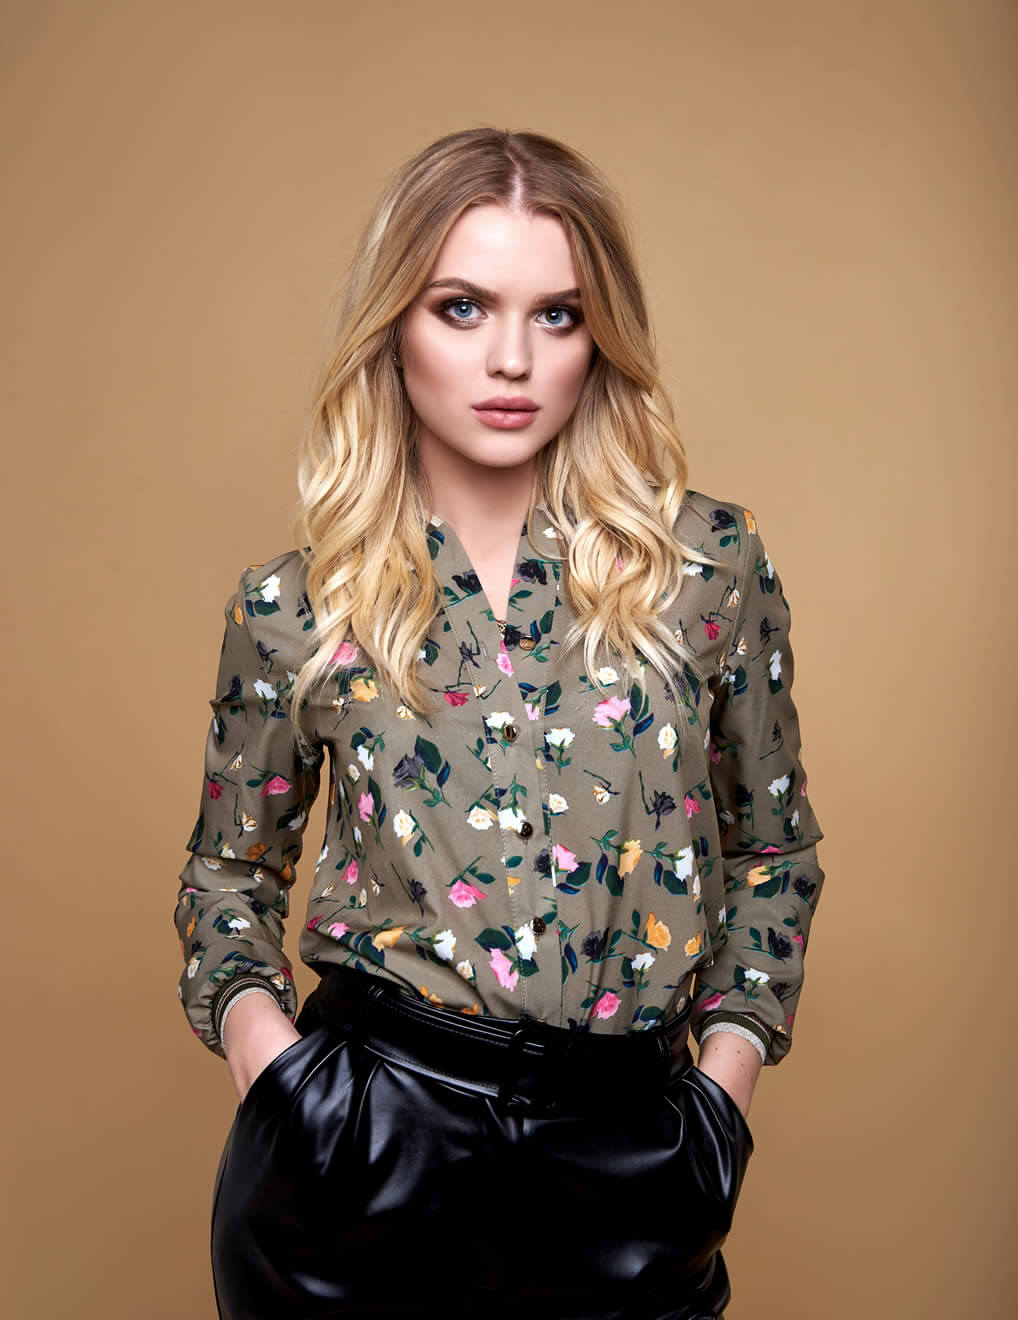 Blonde woman with leather pants and silk pants shows an example of personal style